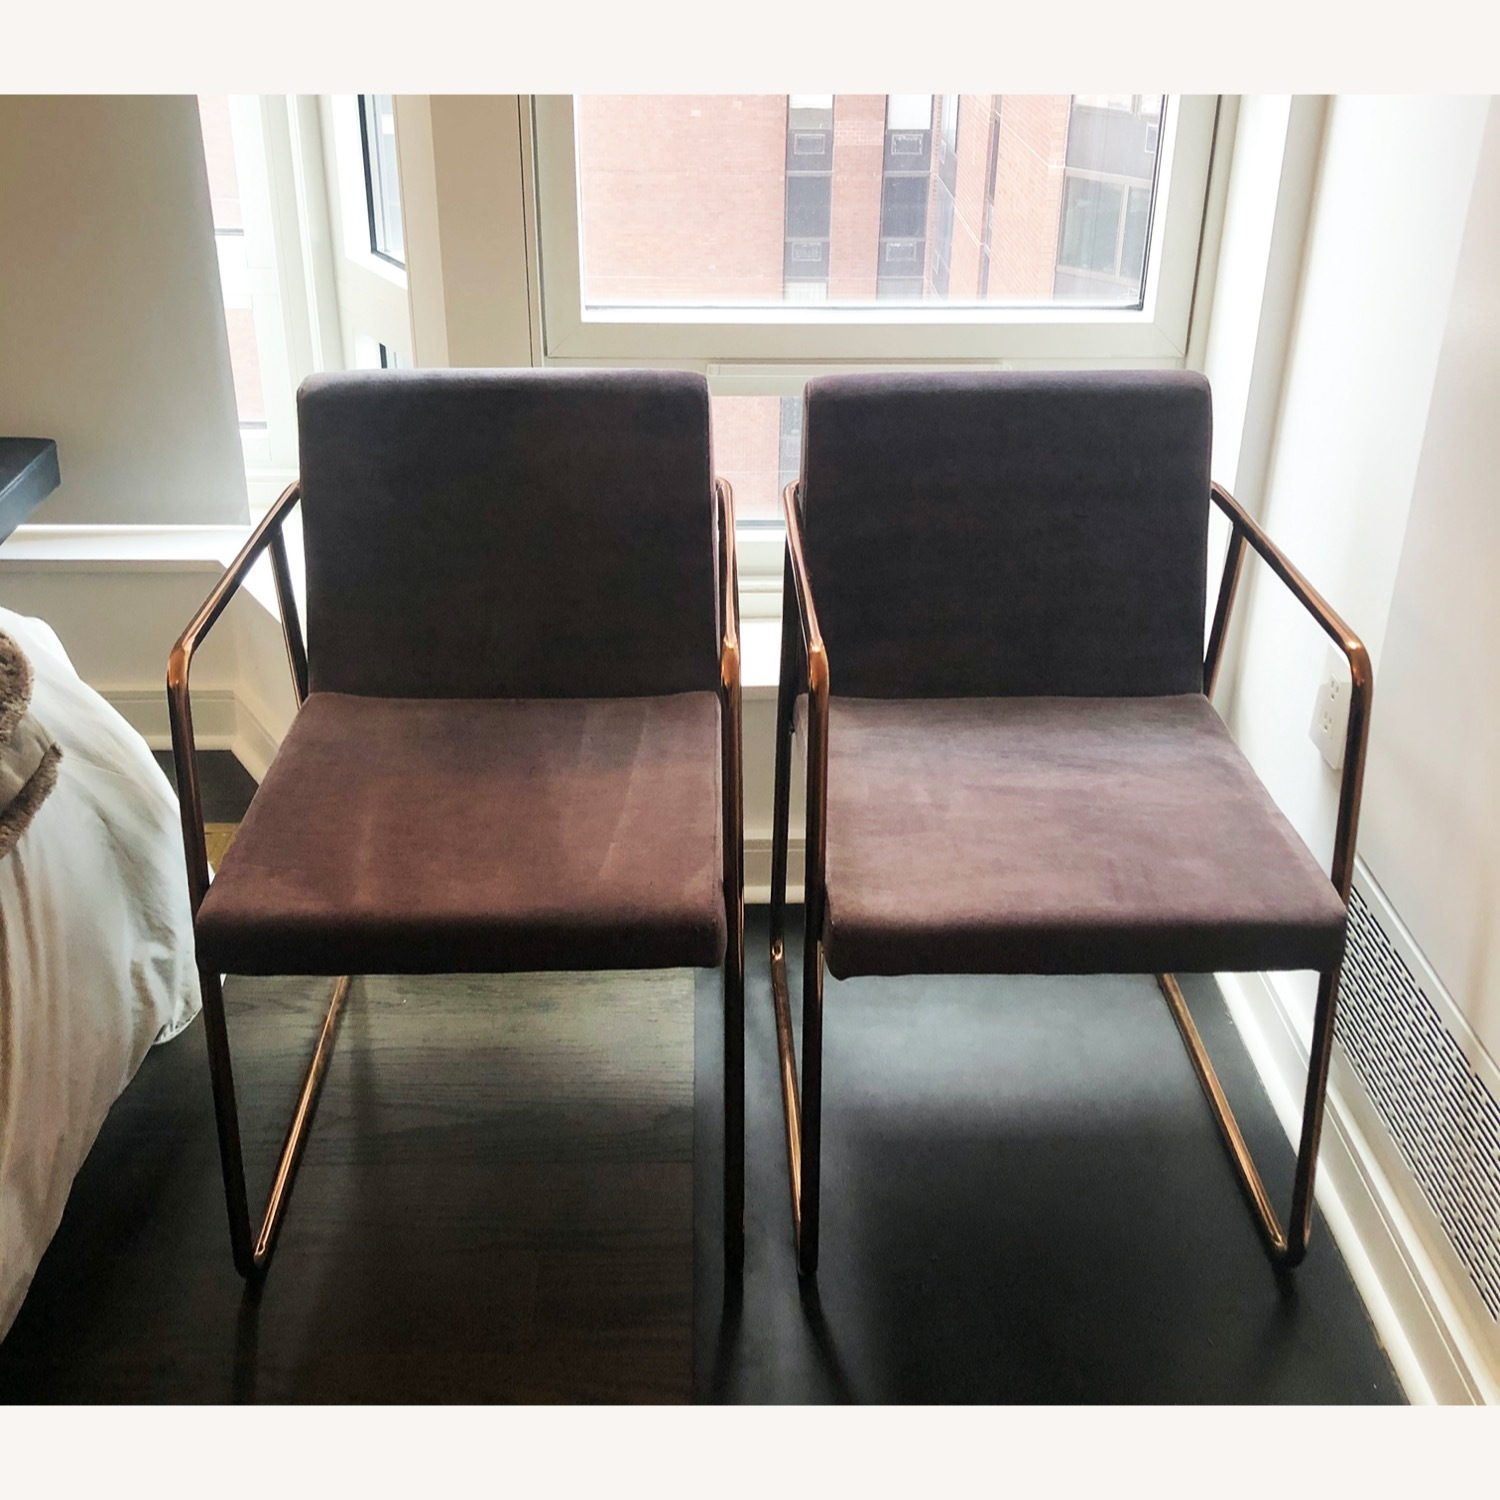 CB2 Rouka Dining Chairs - image-4